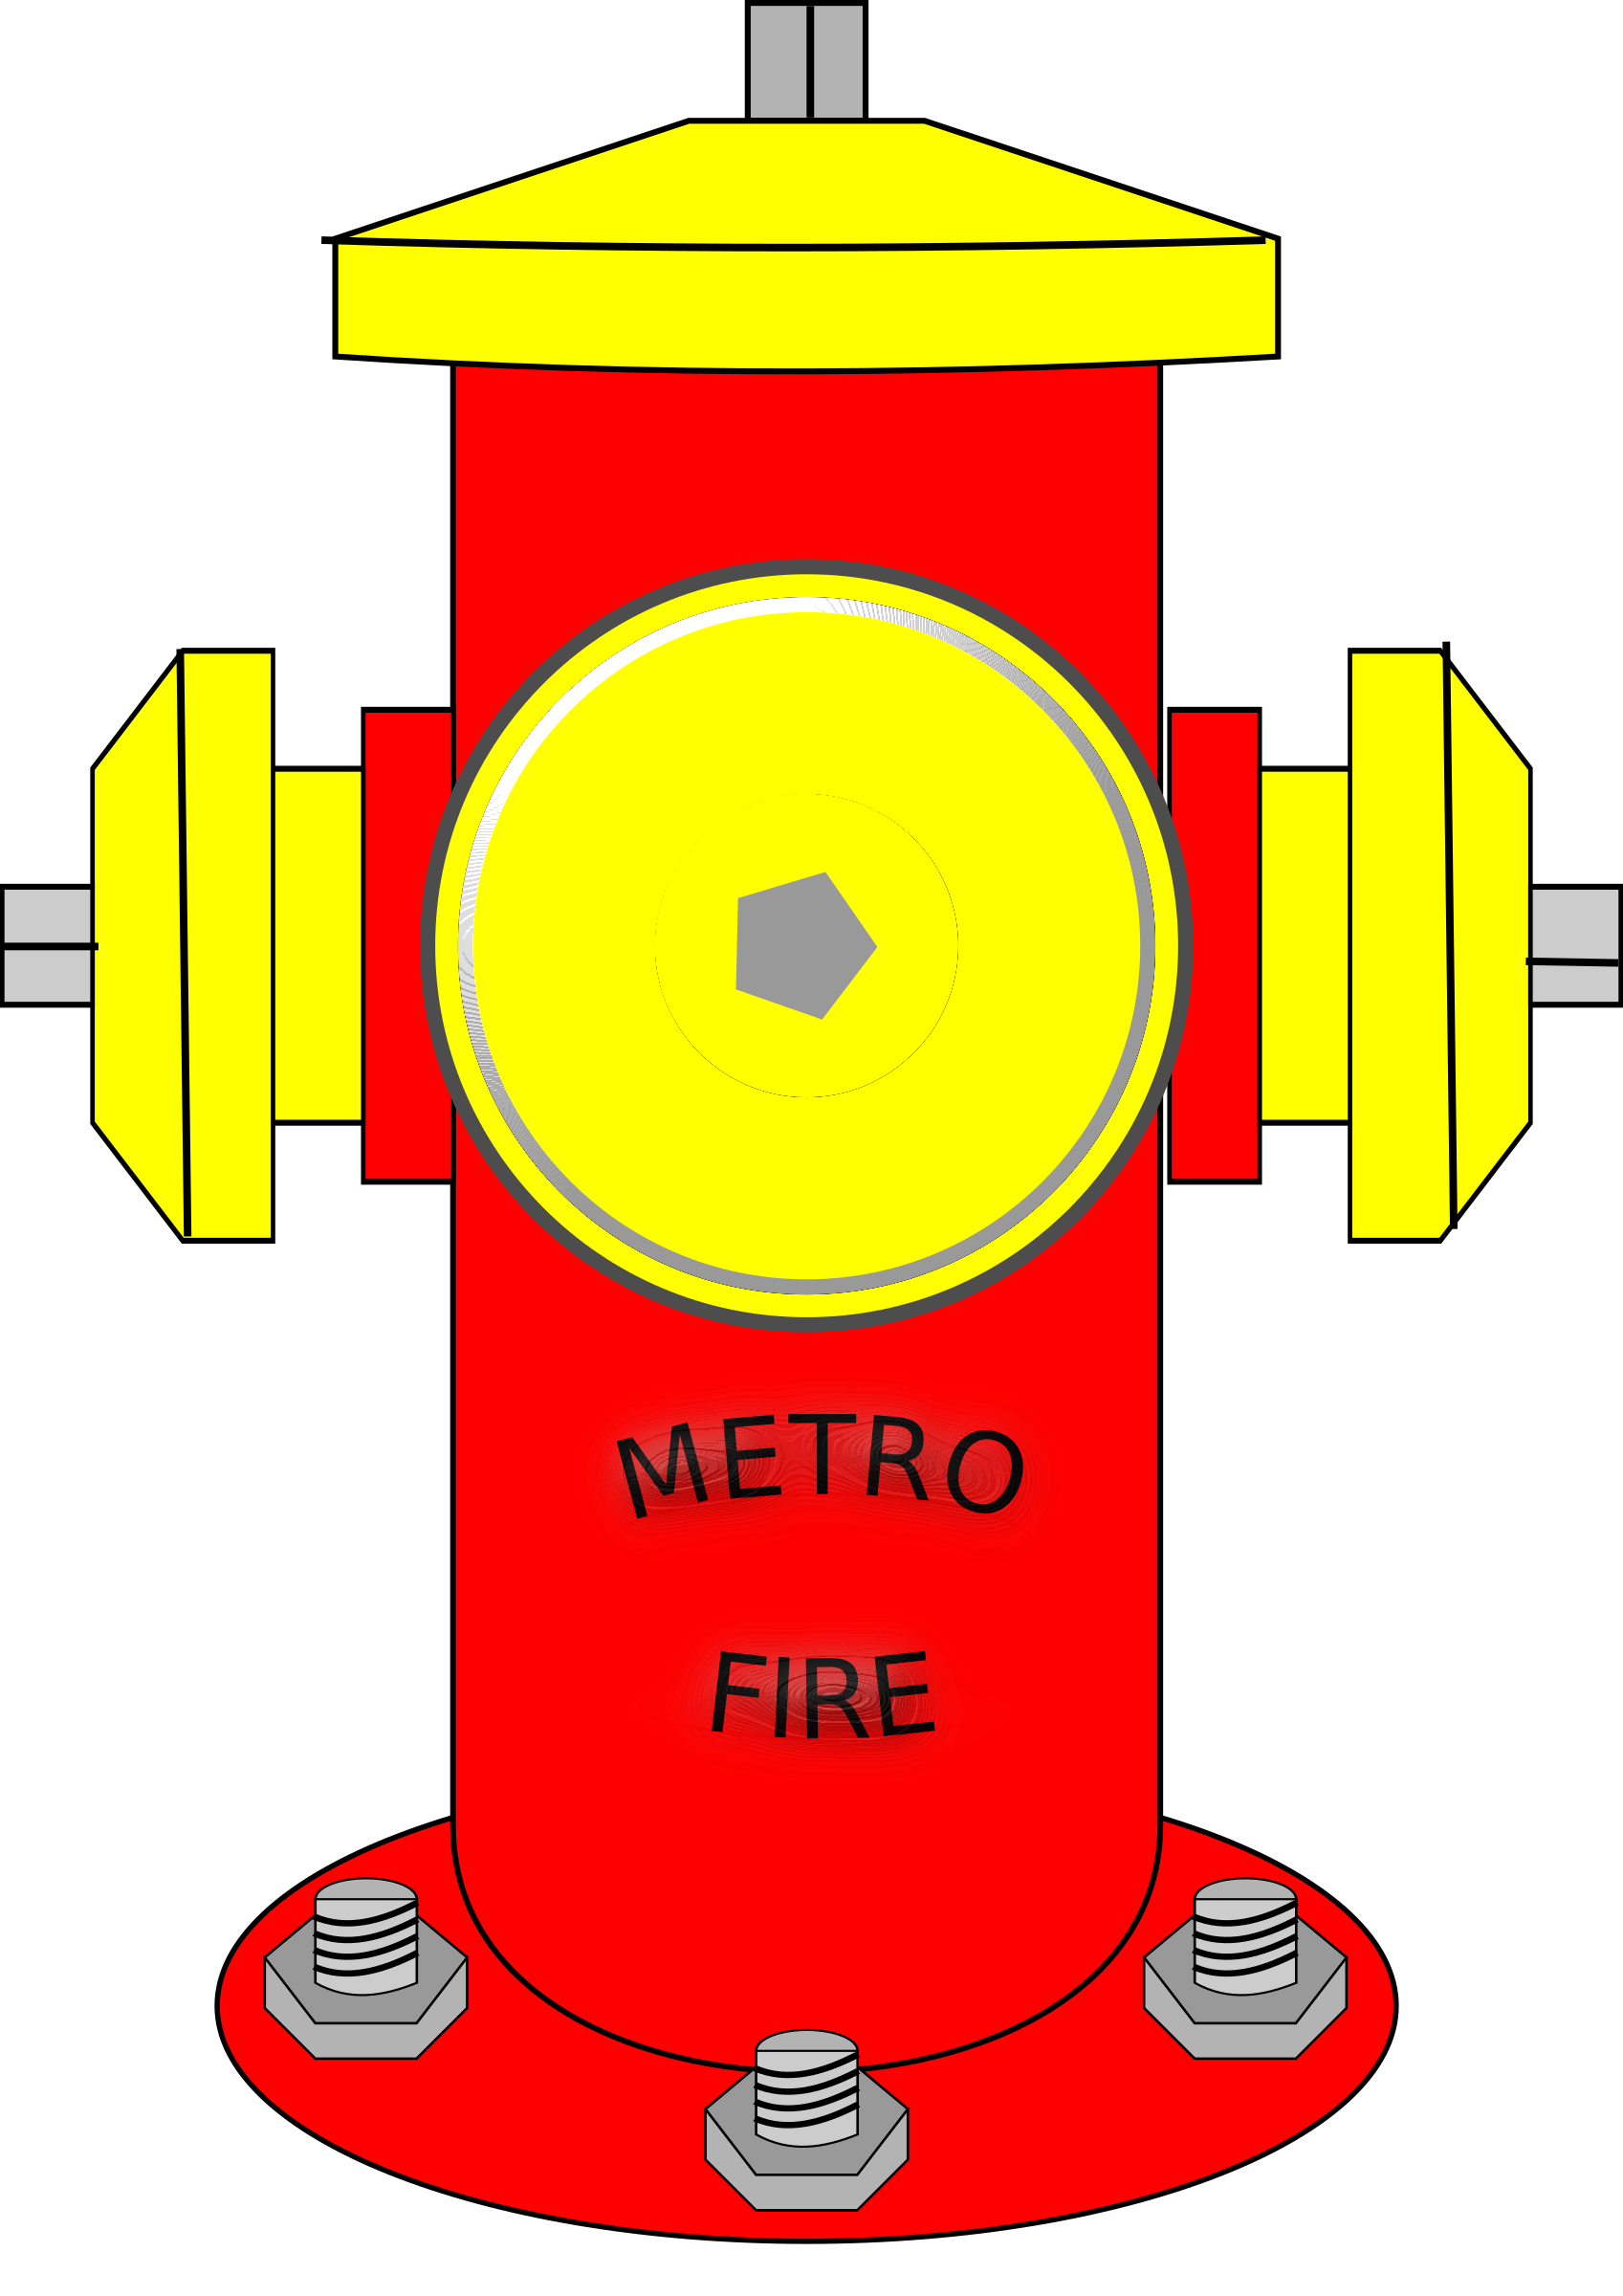 Yellow clipart fire hydrant Hydrant Hydrant Fire Fire Clipart